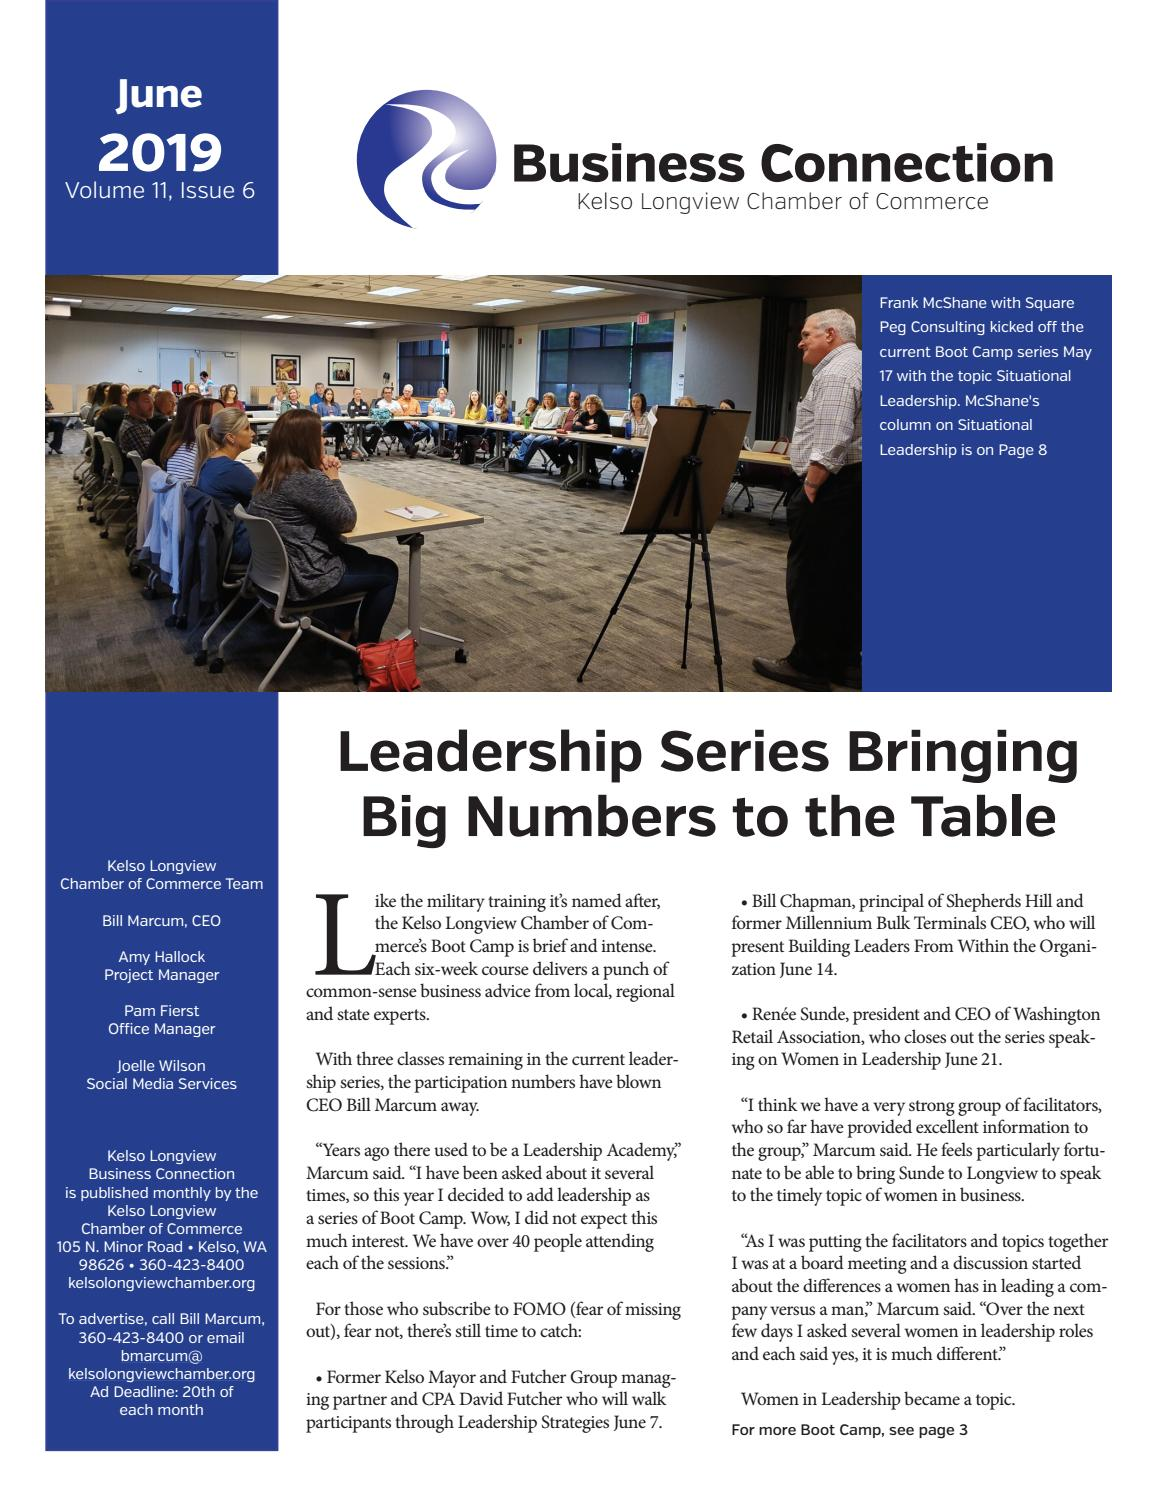 June 2019 Business Connections By Kelso Longview Chamber Of Commerce